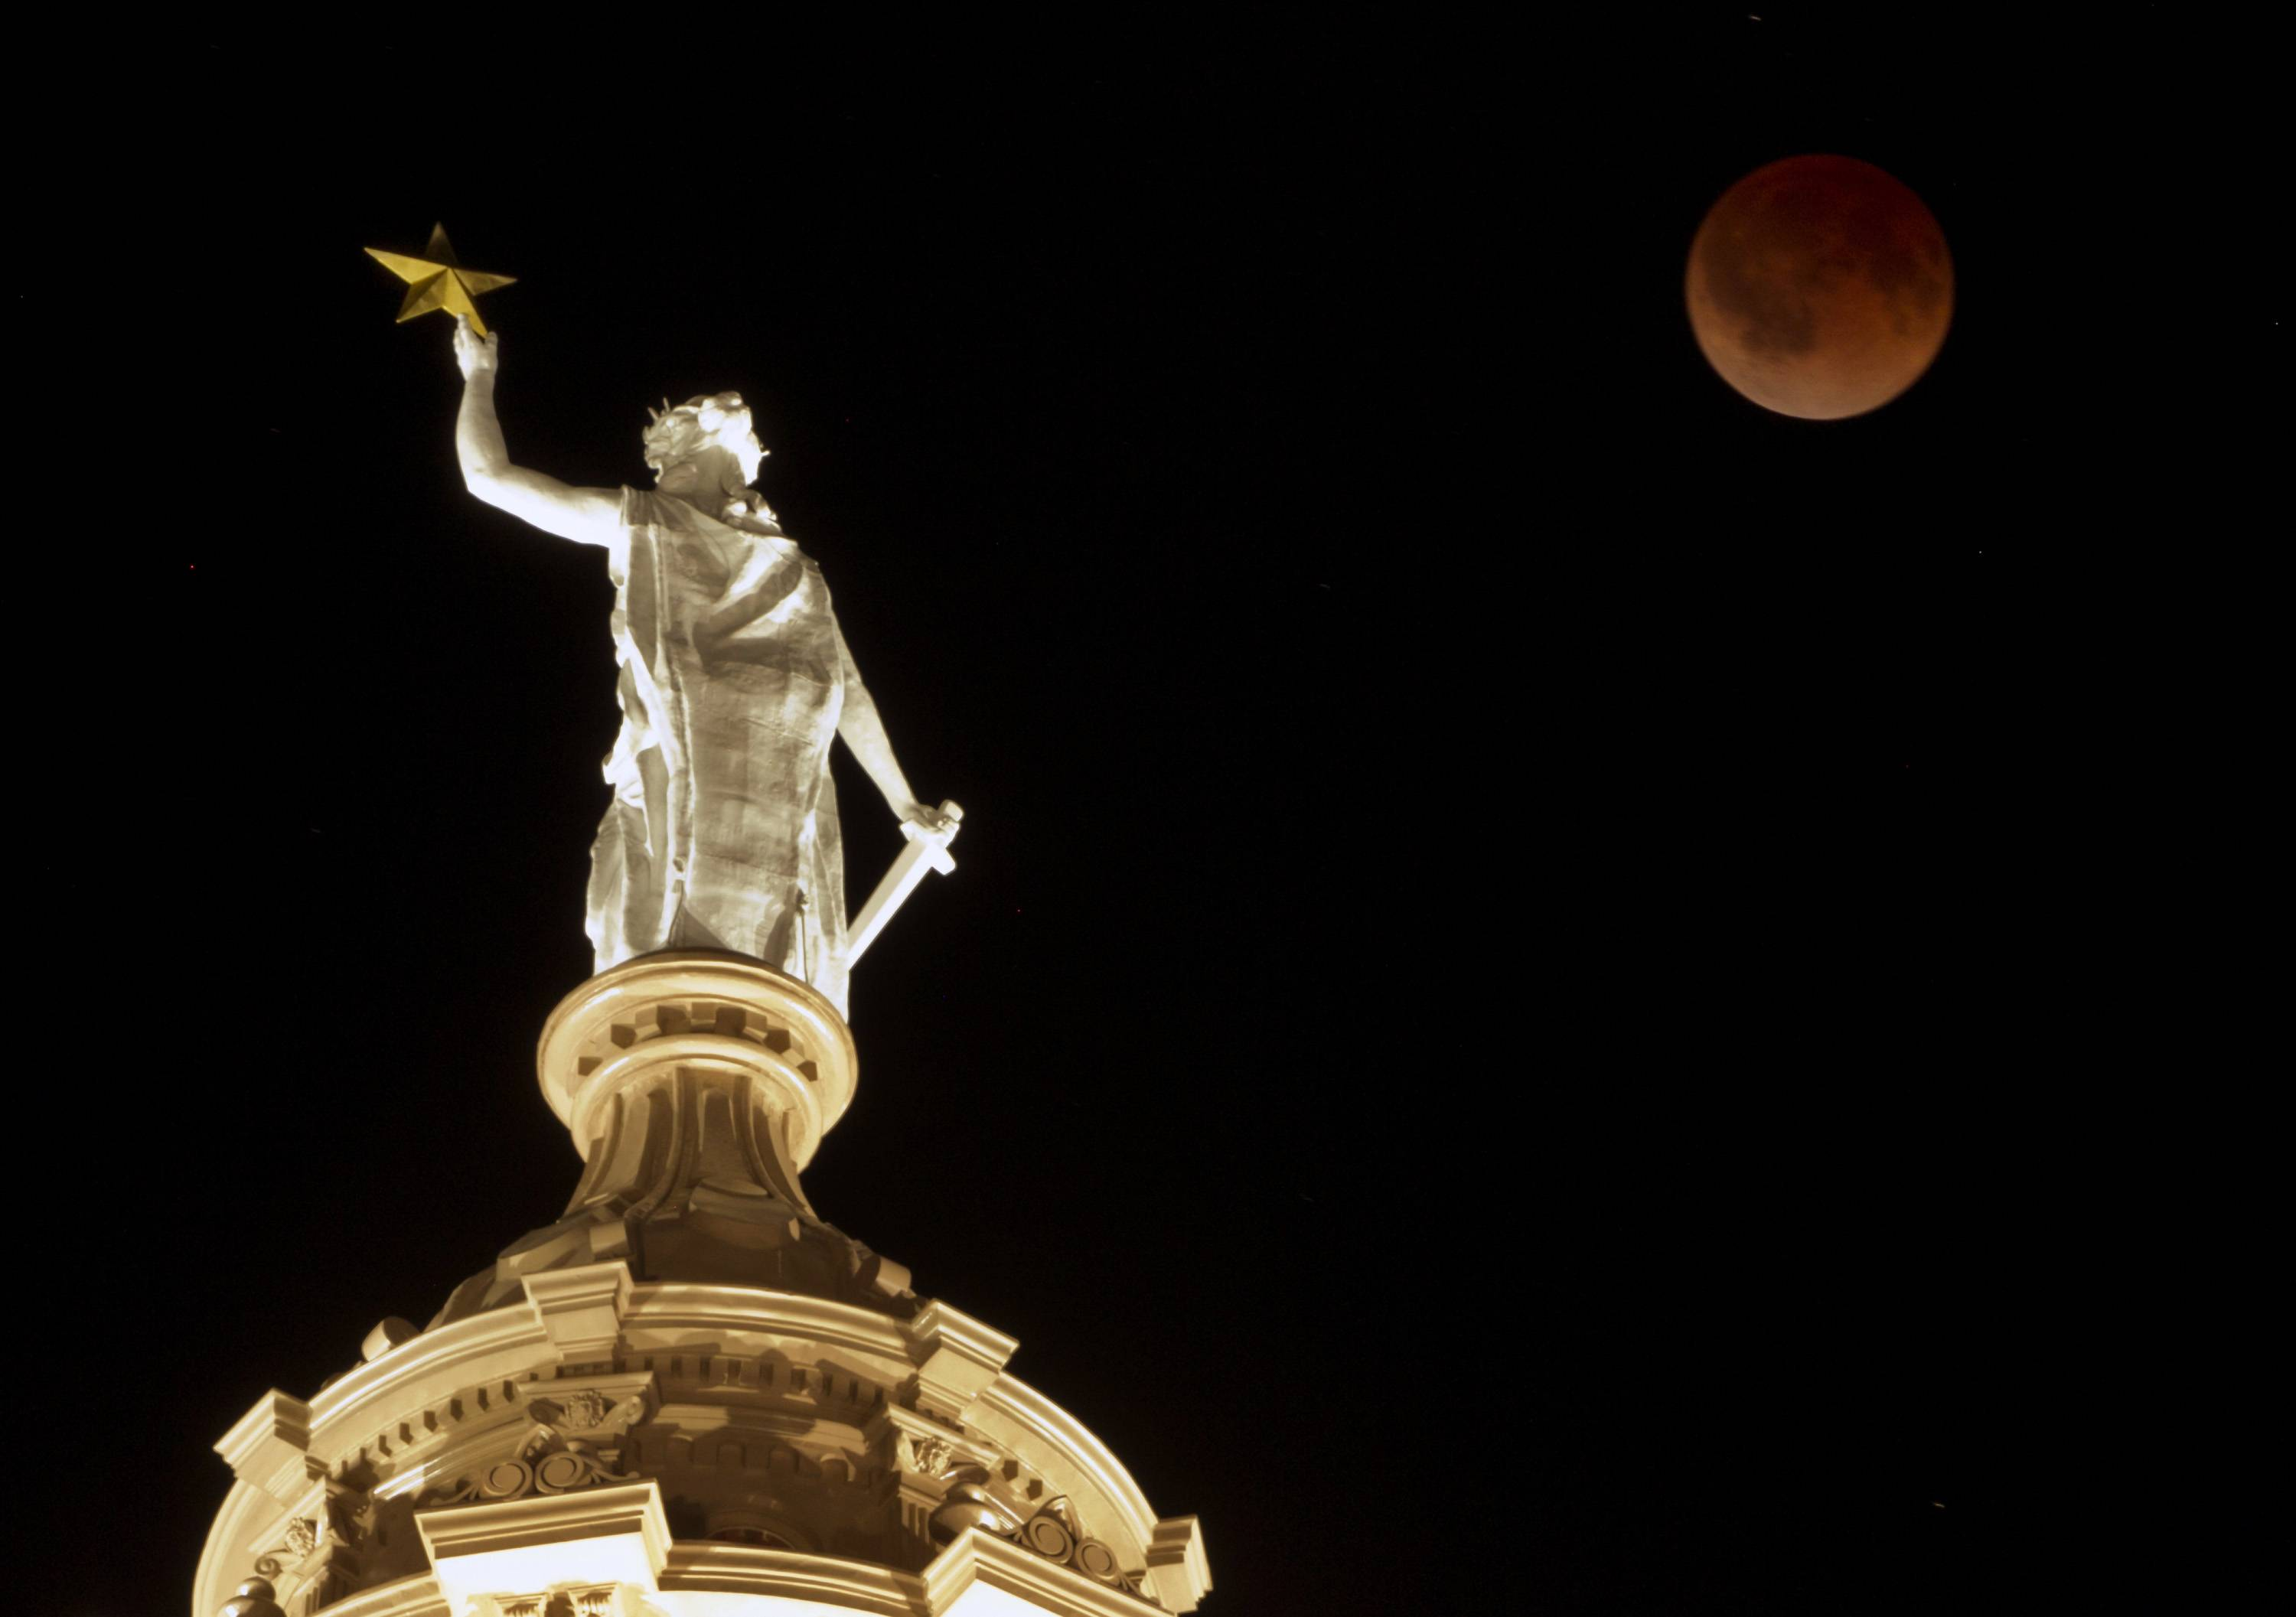 The moon glows a red hue over the Goddess of Liberty statue atop the Capitol in Austin, Texas, during a total lunar eclipse Tuesday, April 15, 2014. Tuesday's eclipse is the first of four total lunar eclipses that will take place between 2014 to 2015.